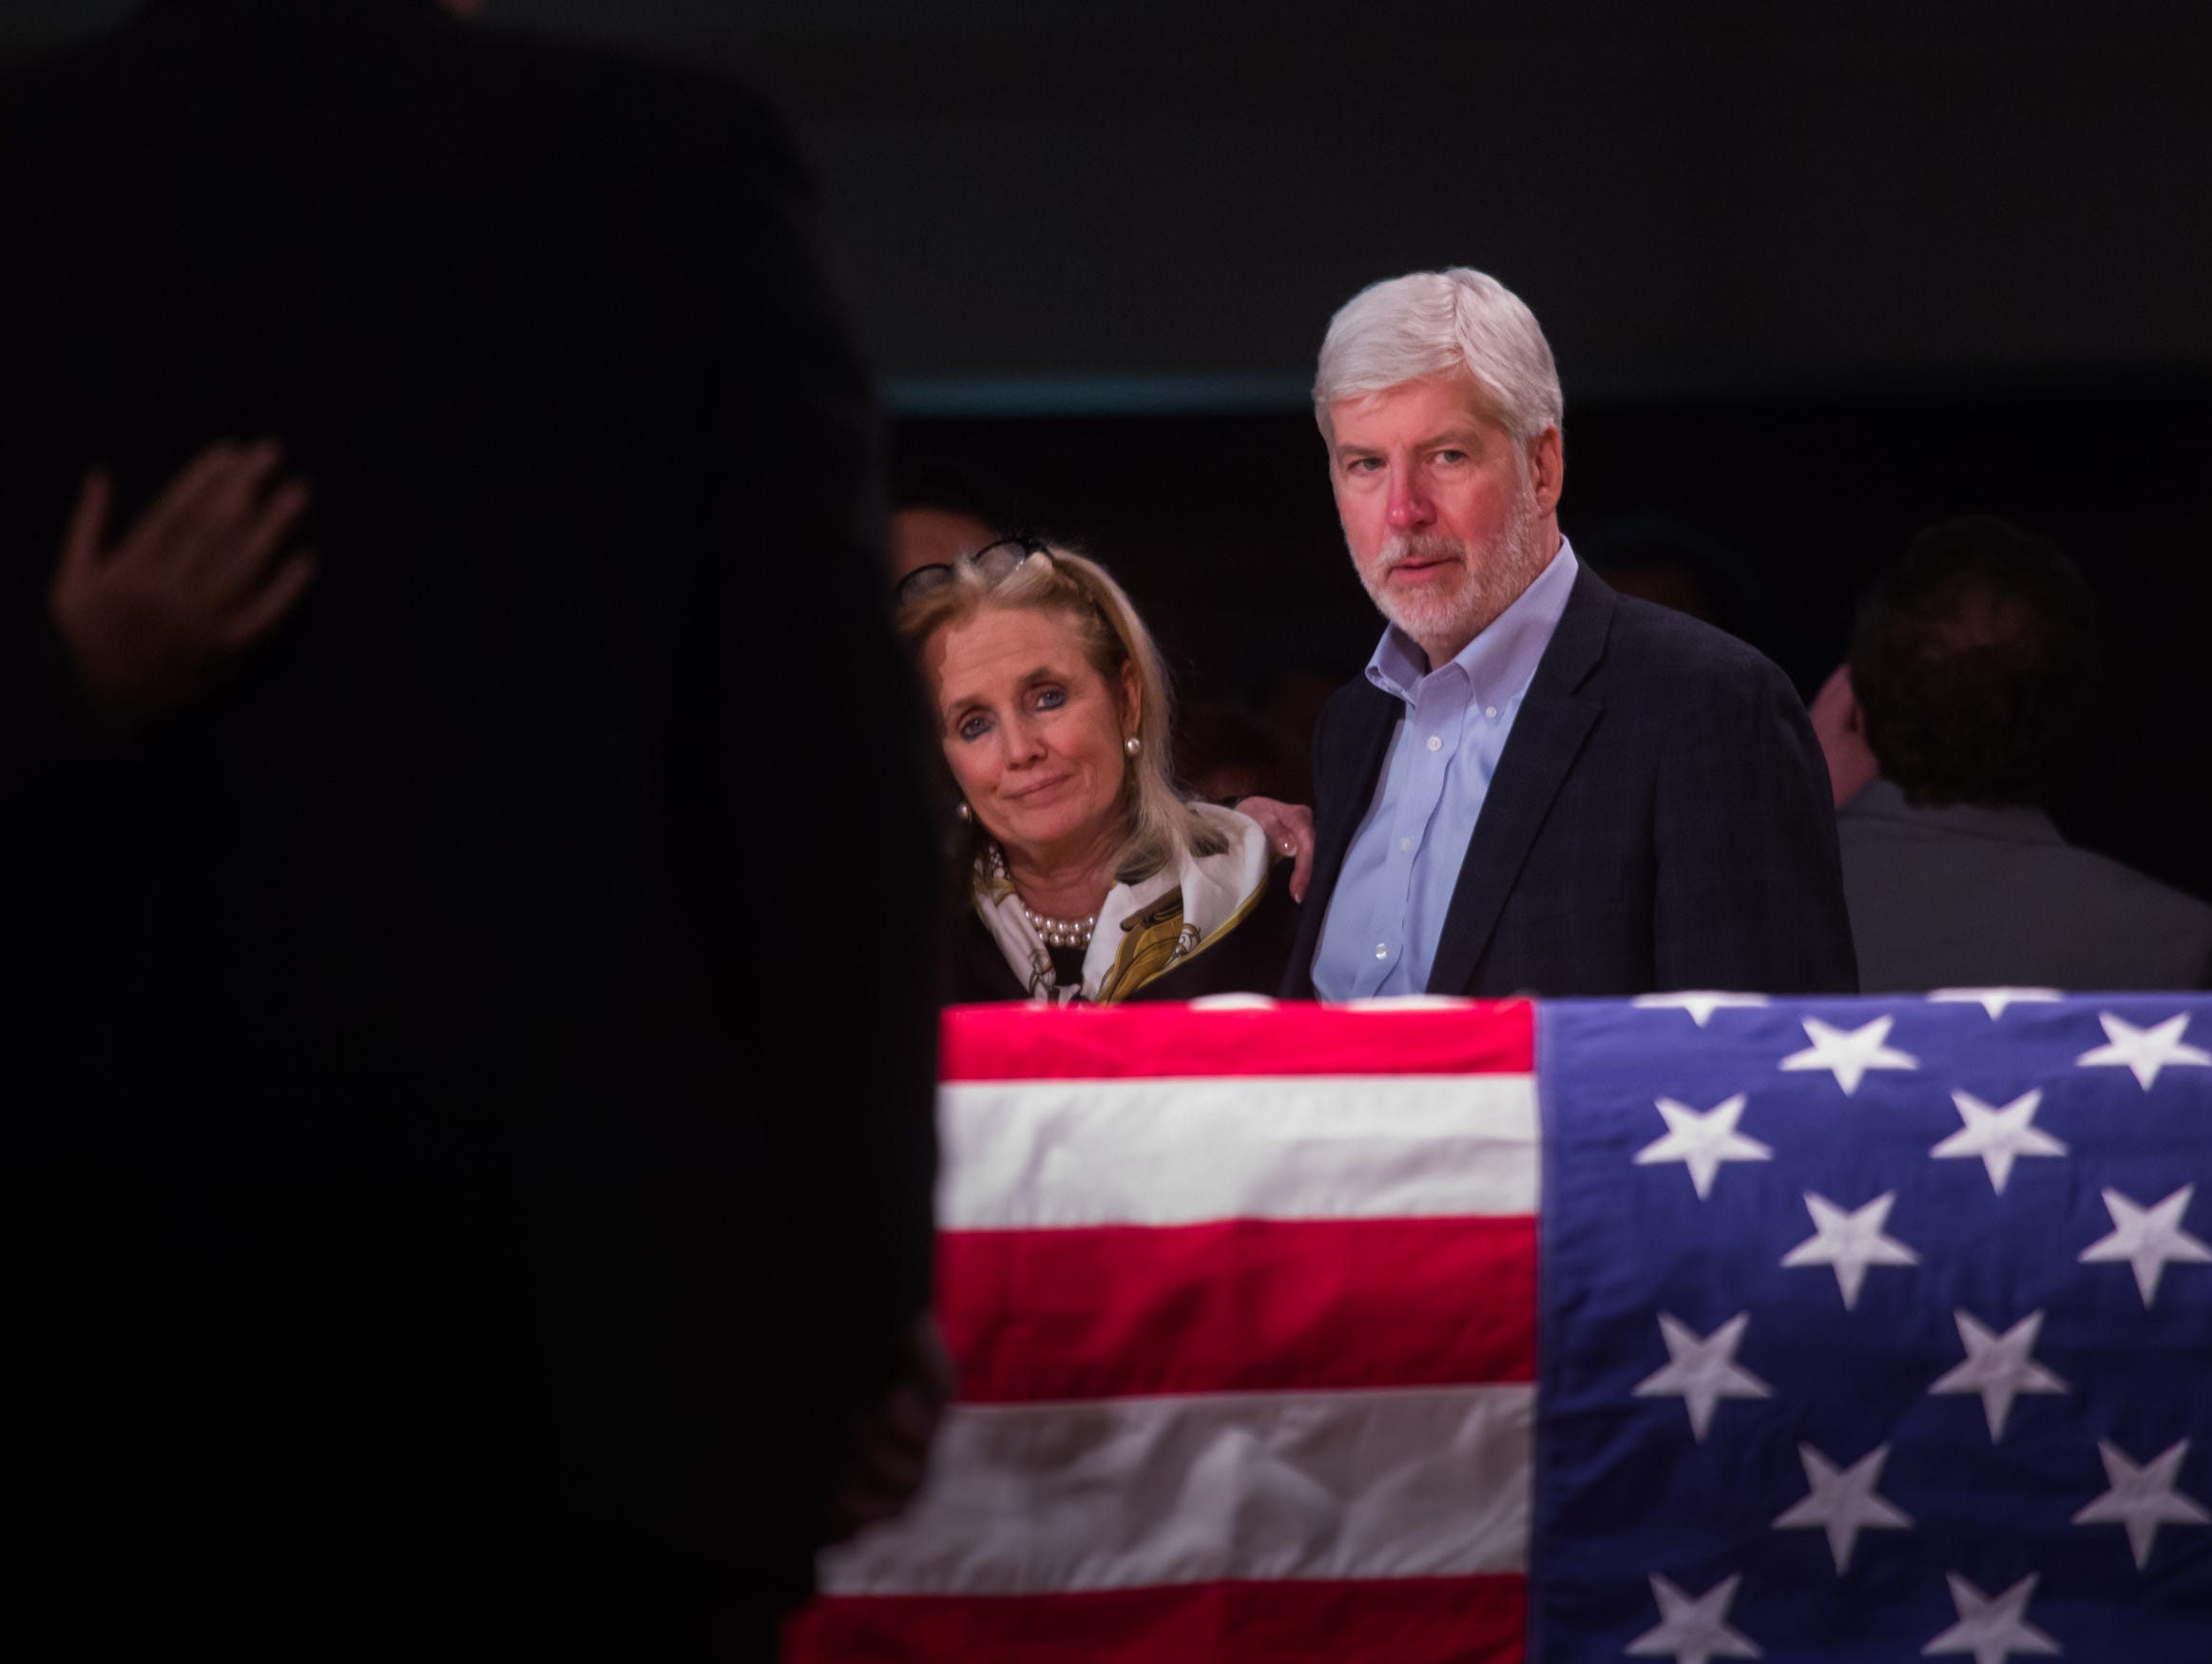 Former Governor Rick Snyder talks with Rep. Debbie Dingell during public visitation for her late husband former US Representative John D. Dingell at the Ford Community and Performing Arts Center in Dearborn on Monday, February 11, 2019.